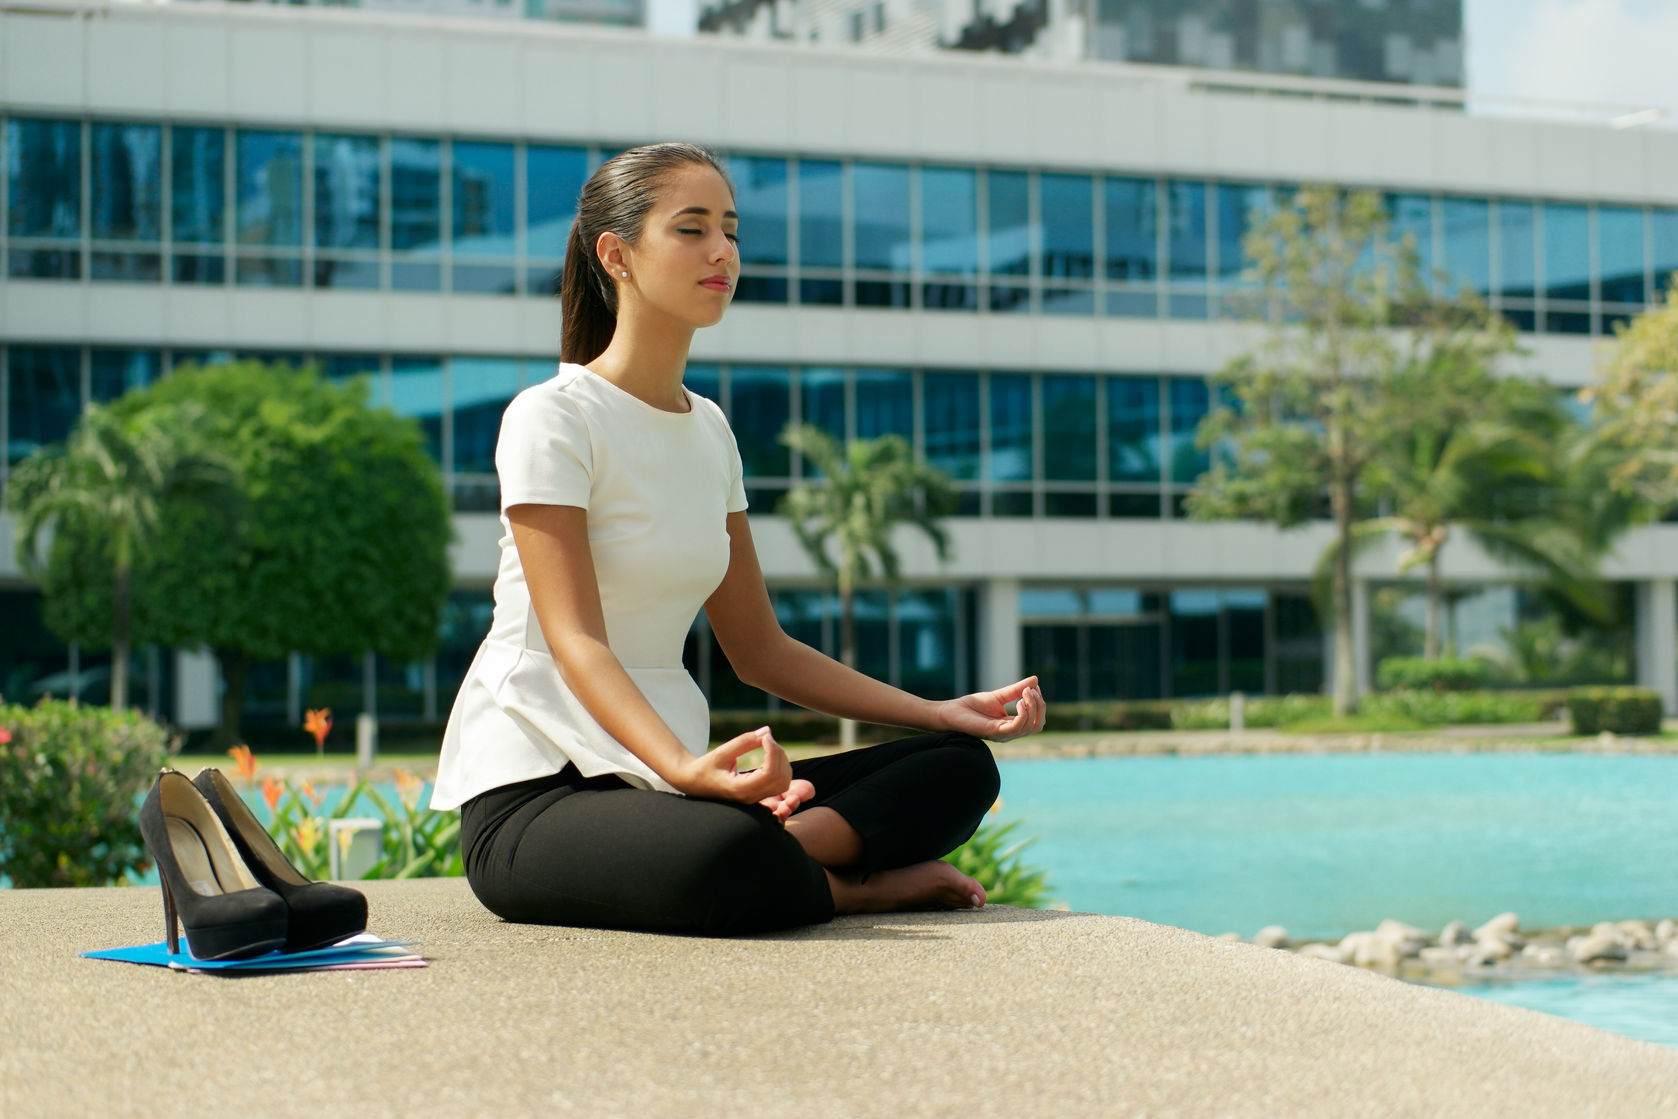 Meditating Woman, https://www.info-on-high-blood-pressure.com/Guided-Meditation.html